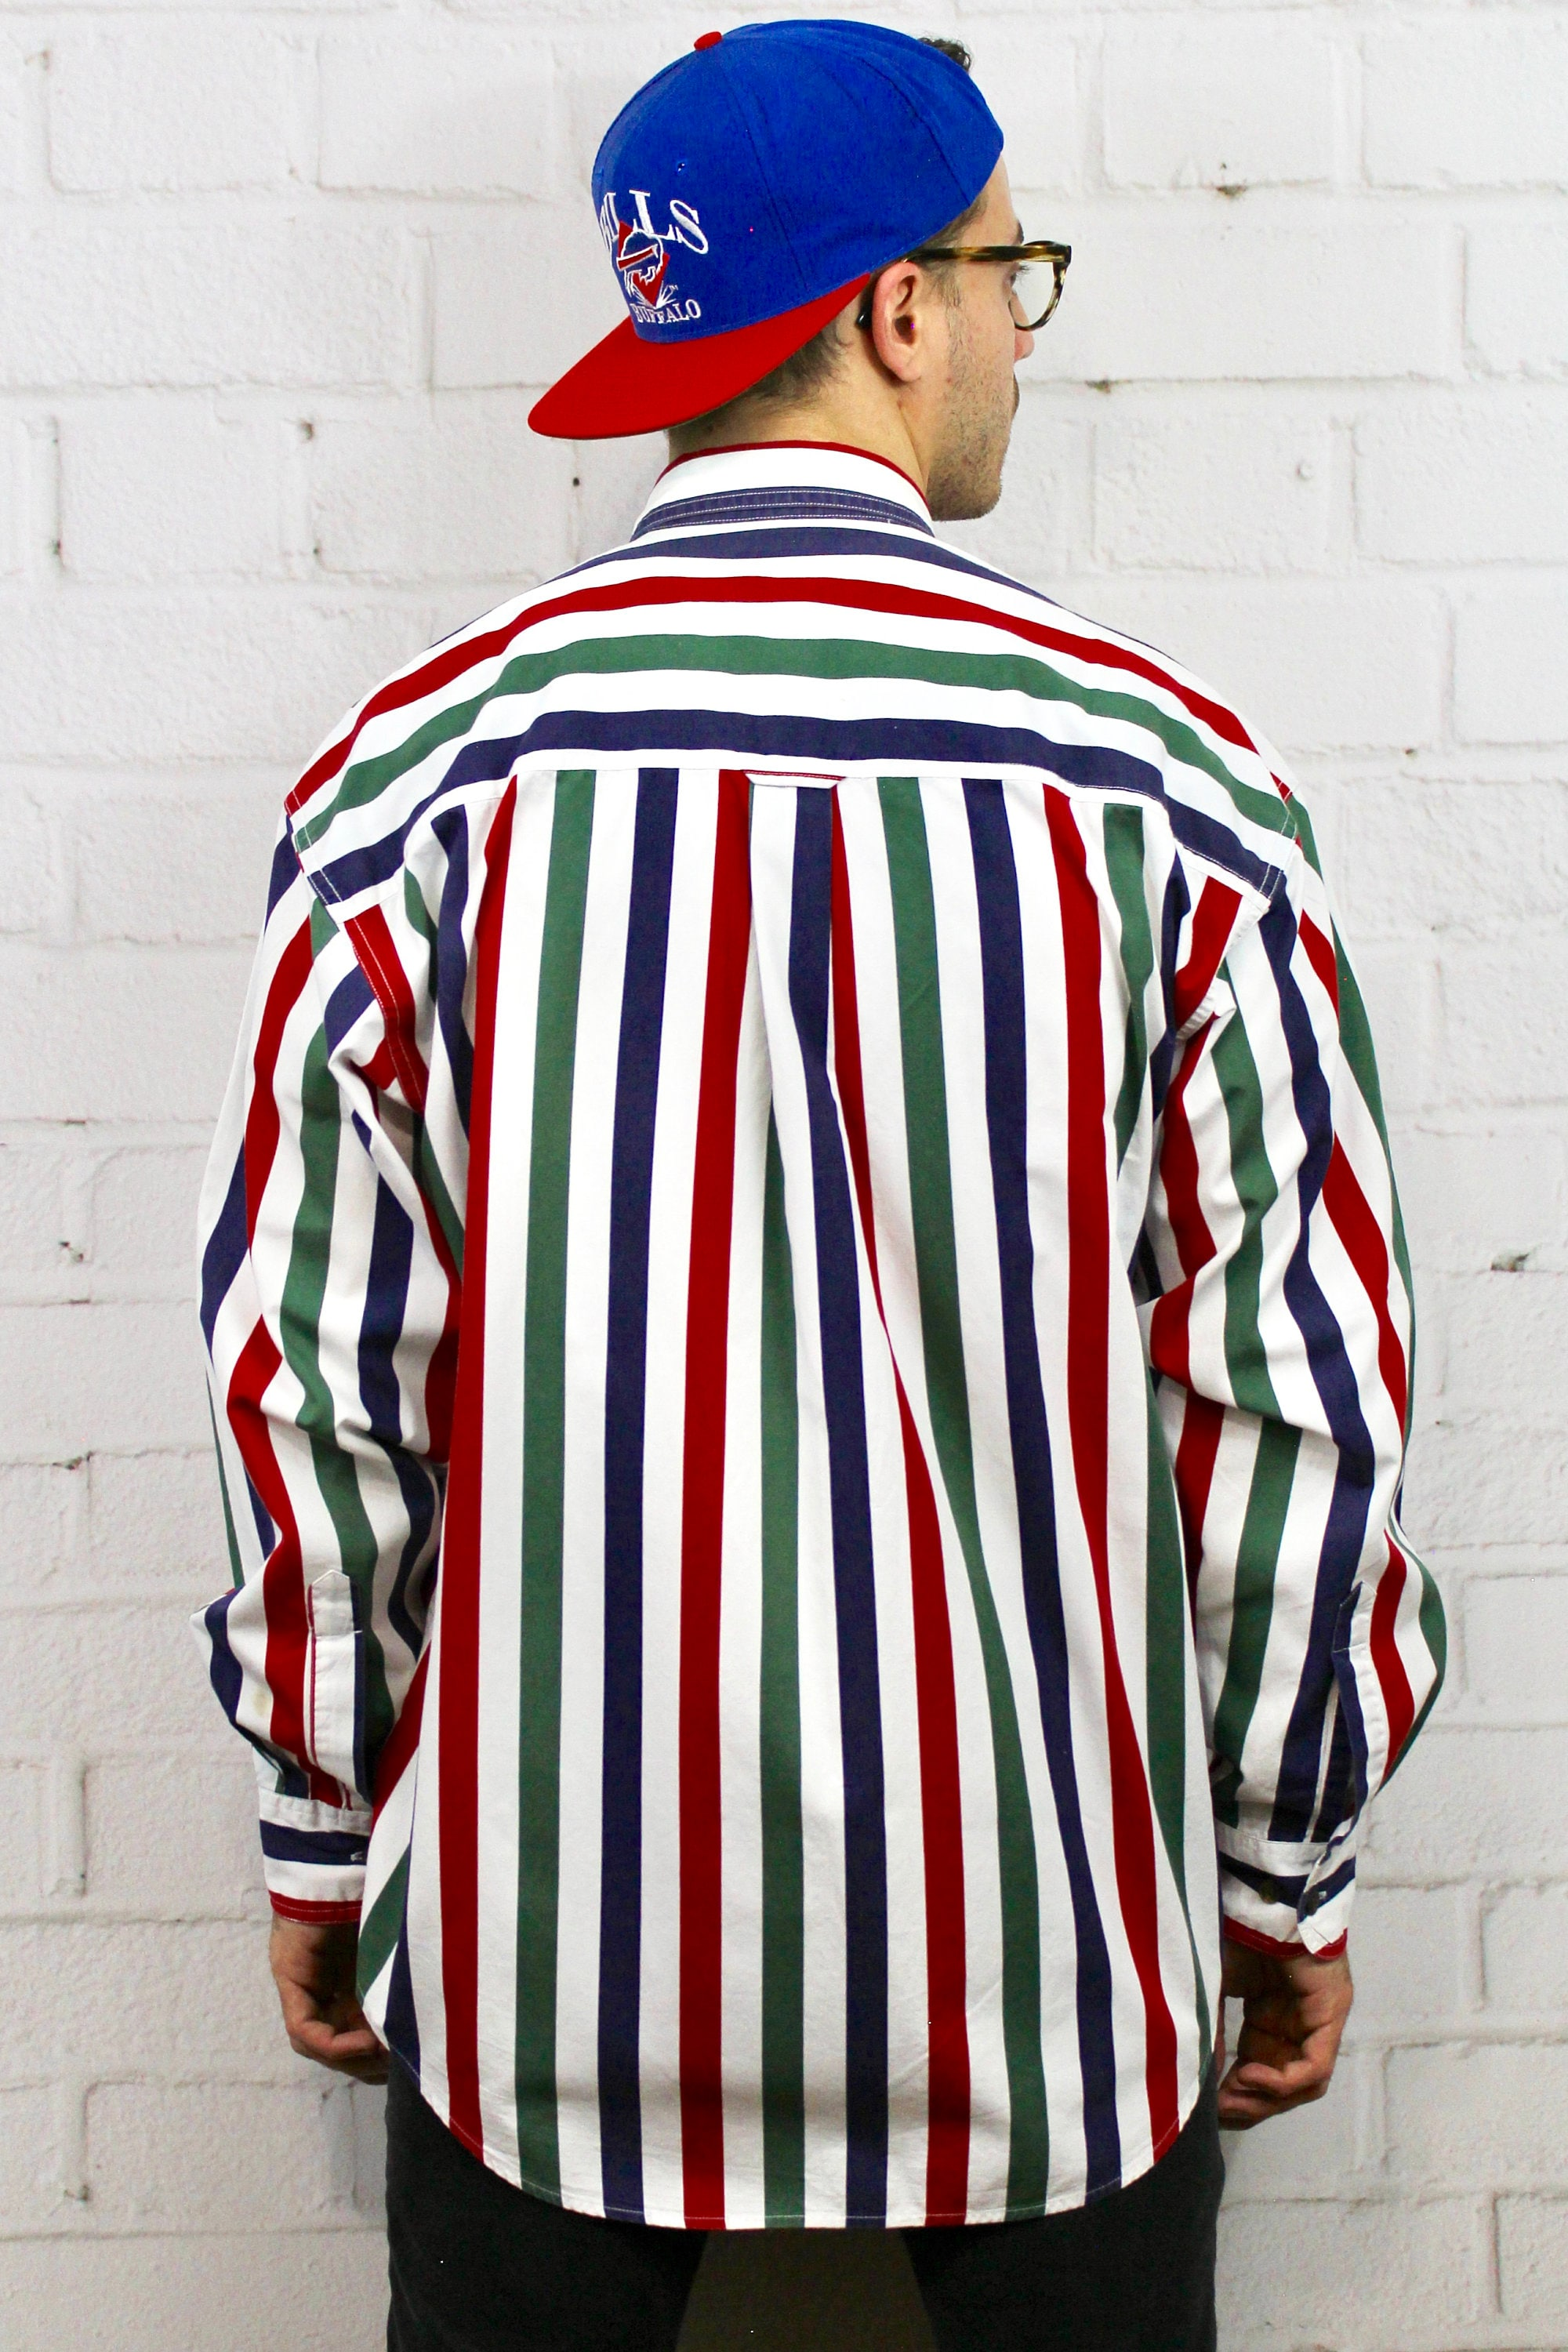 676e766460 ... Shirt / Mens Vintage 80s Polo Ralph Lauren Style Red Blue Green White  Striped Long Sleeve Button Down Fresh Prince. gallery photo gallery photo